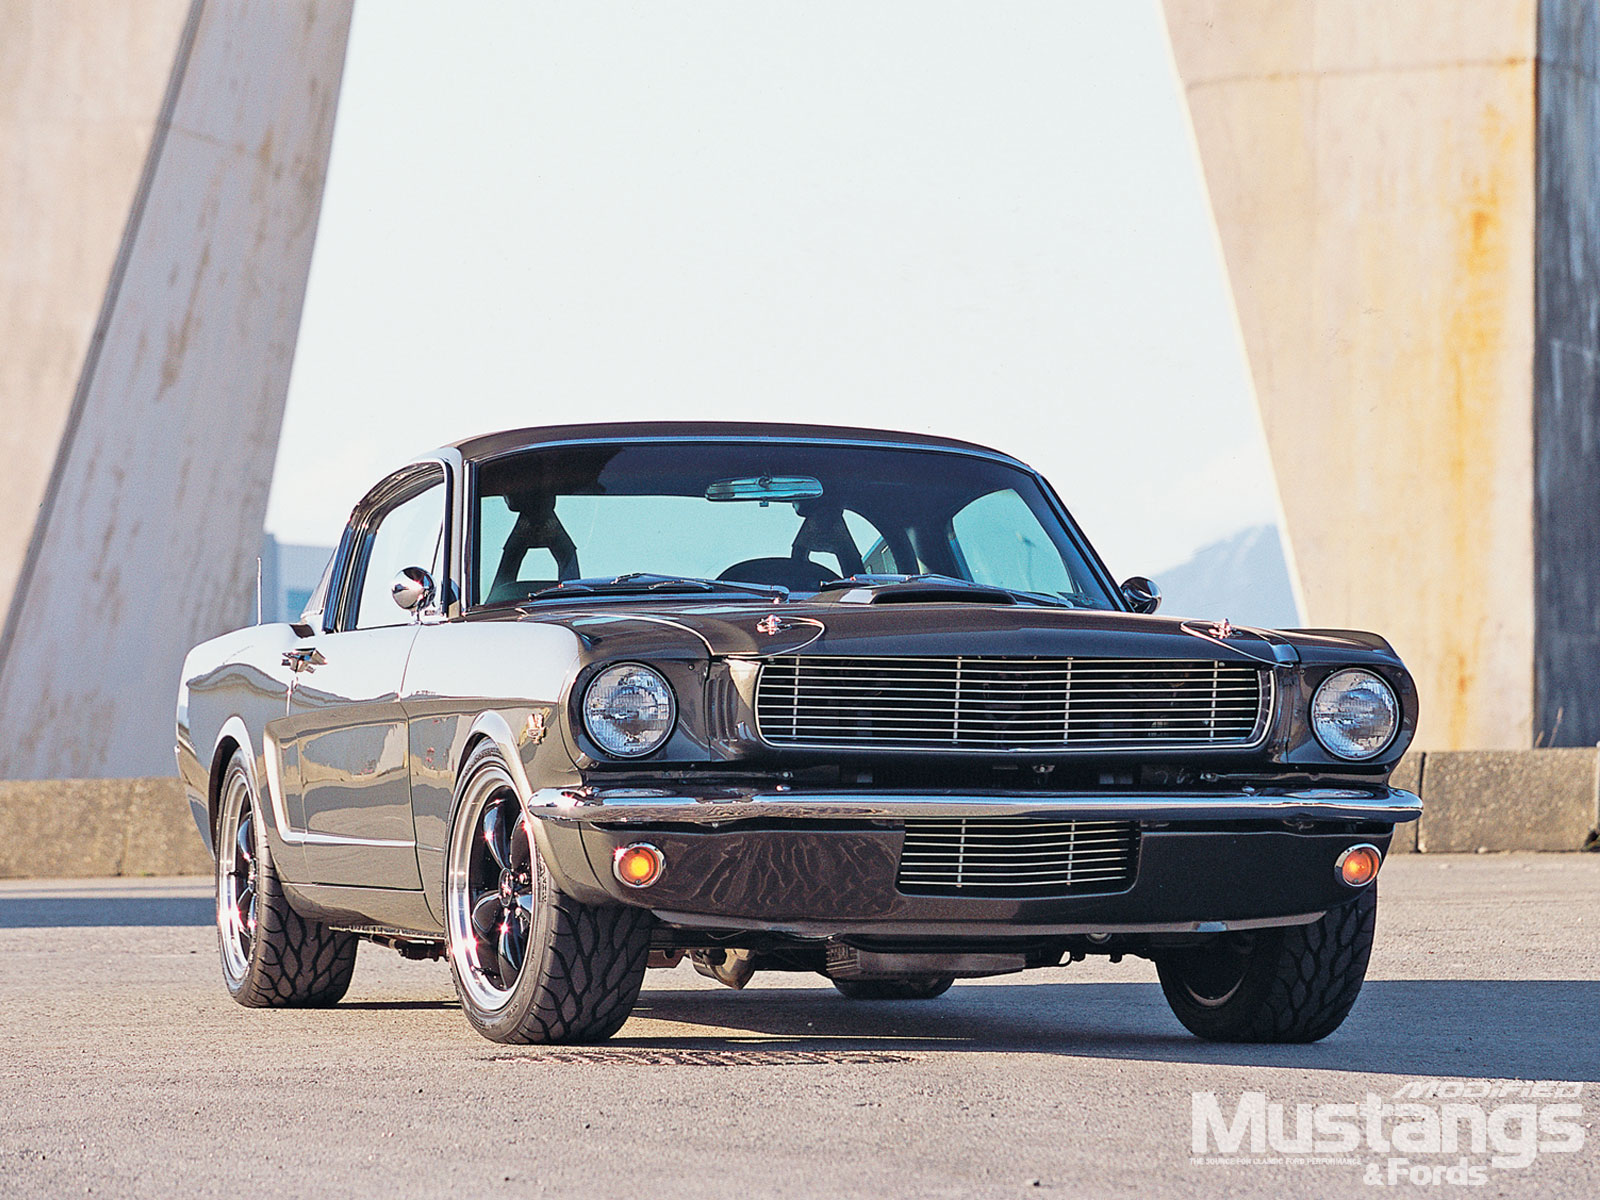 1965 Ford Mustang Fastback Front View